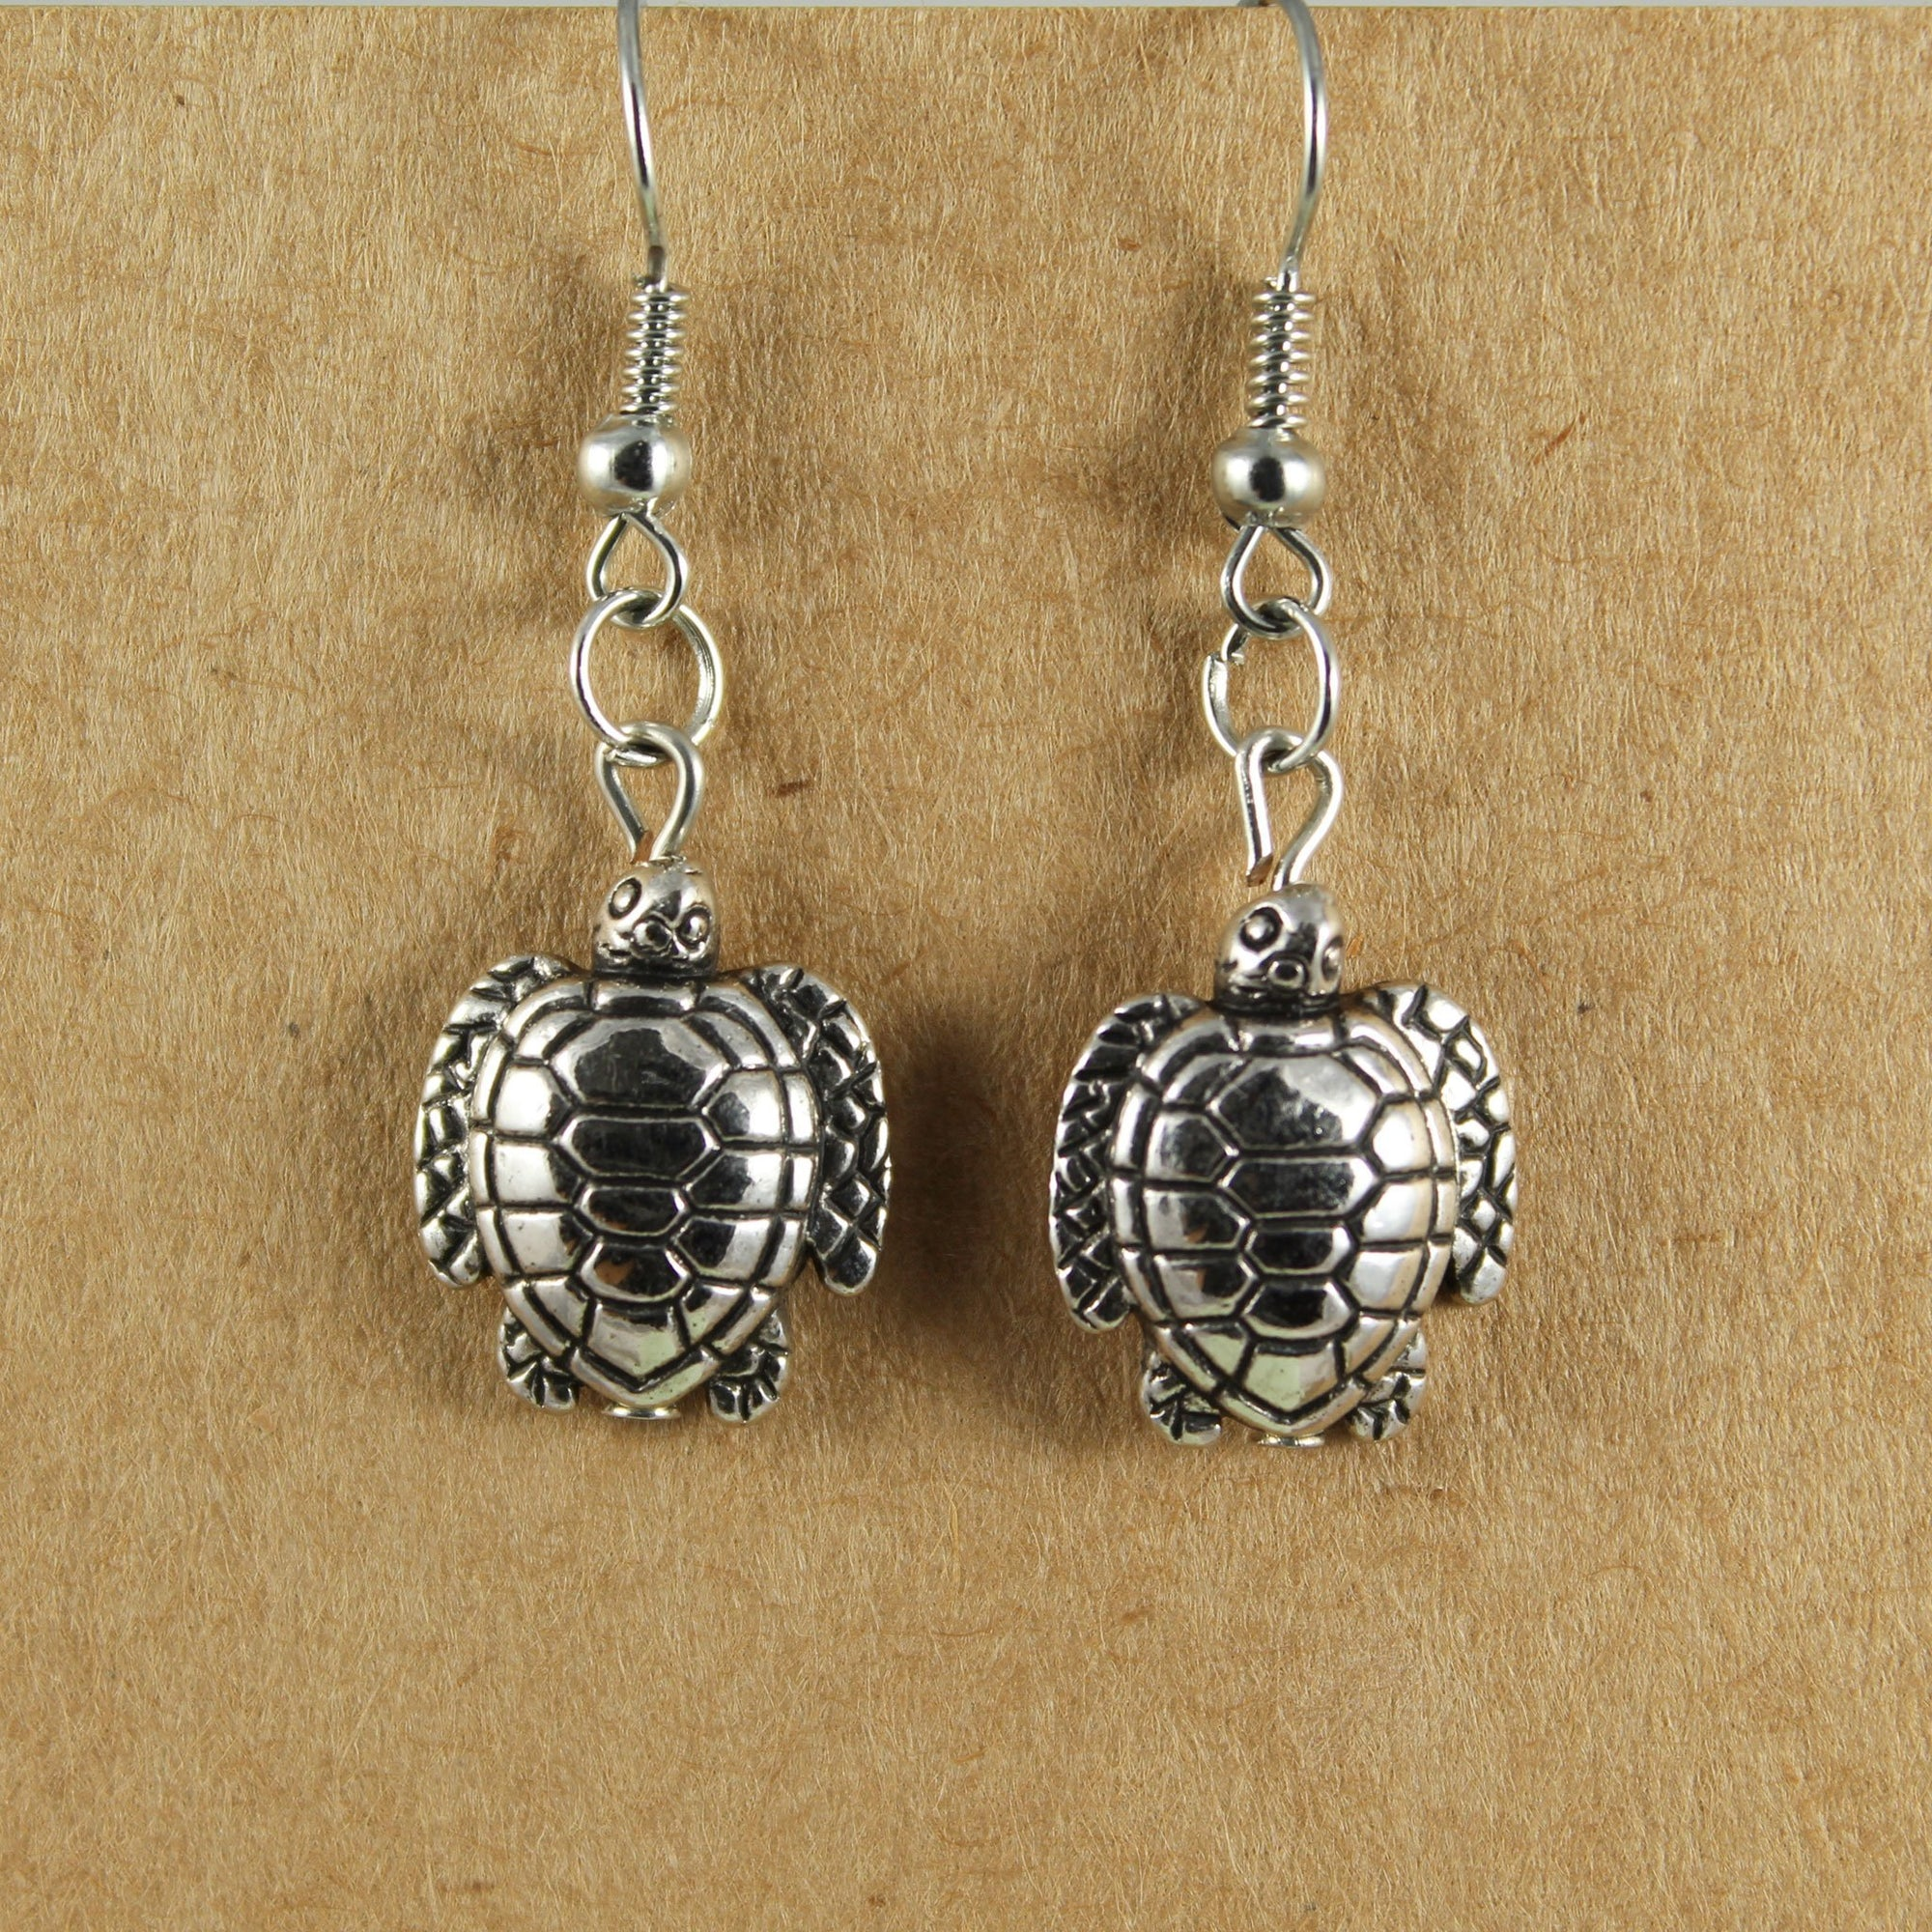 Turtle Earrings | Earrings - The Naughty Shrew